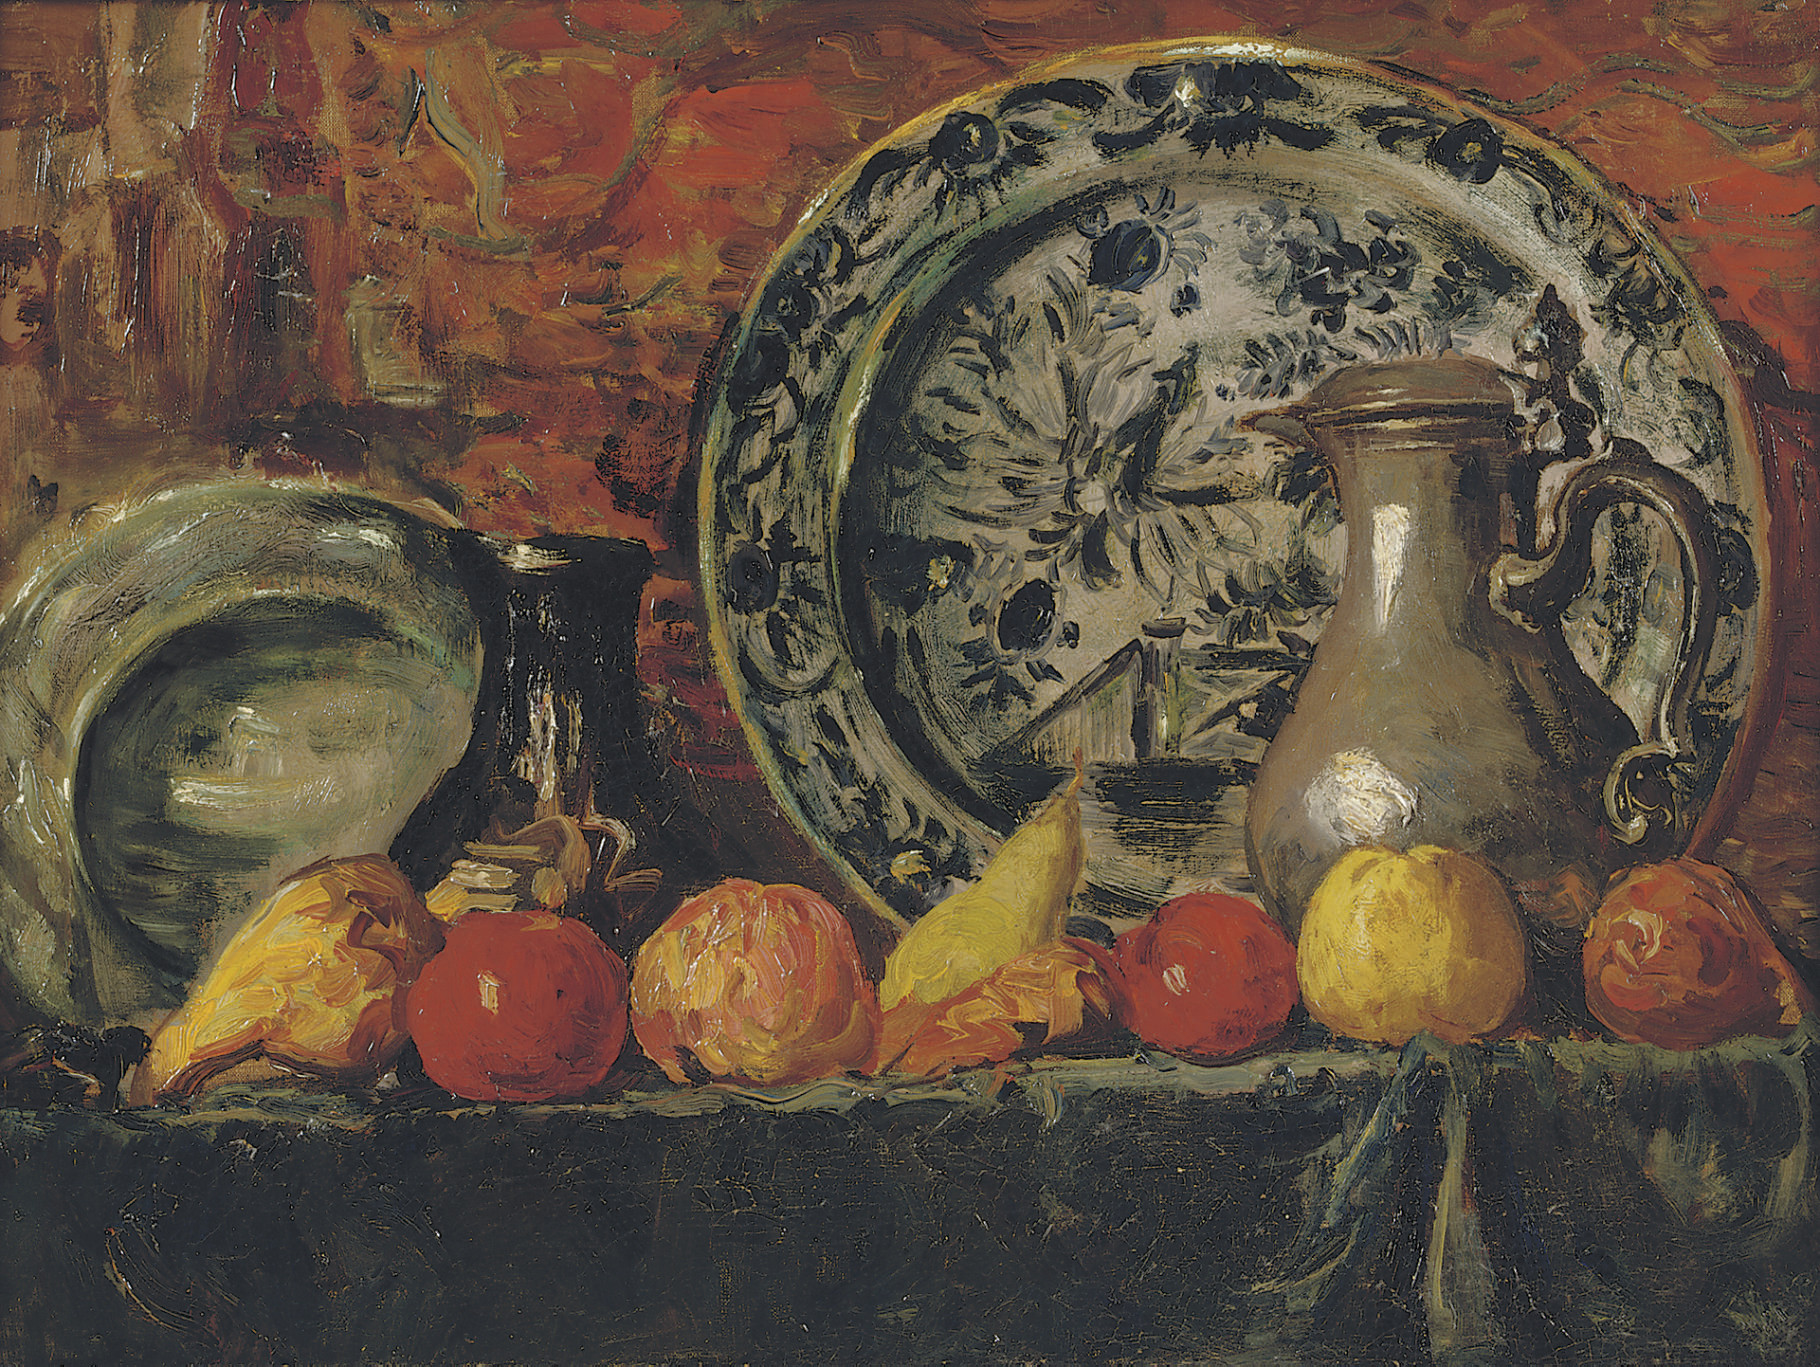 Still life with fruit, plates and jugs